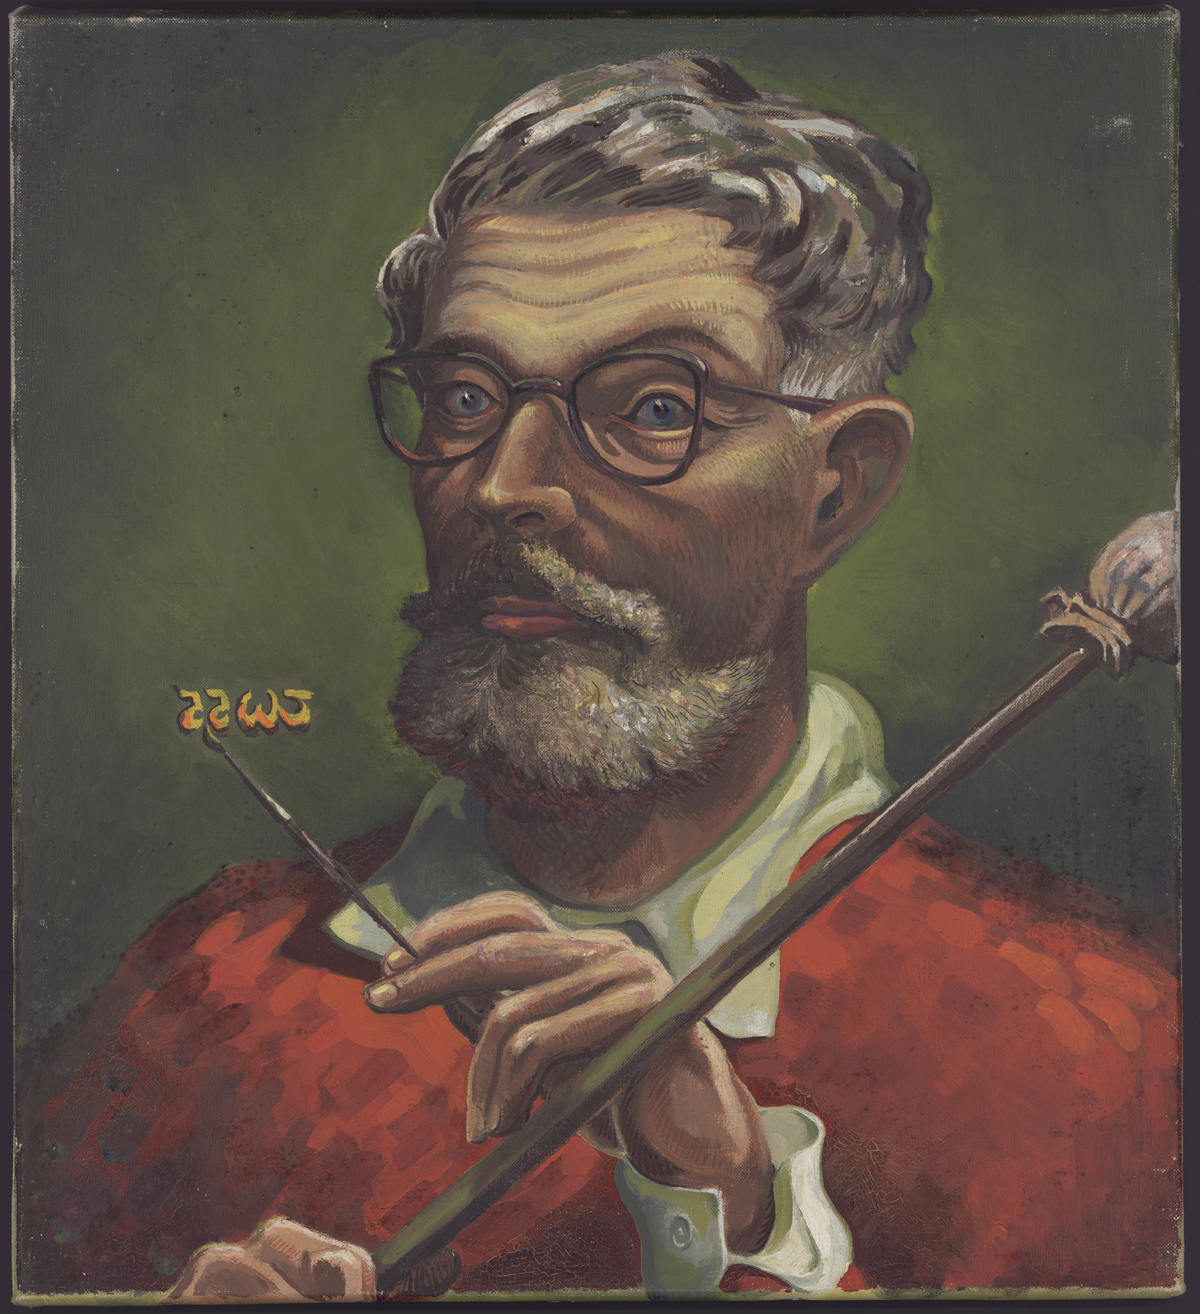 Self-portrait painted by T. H. White (1955). Several of White's other paintings are housed in the Ransom Center's art collections.